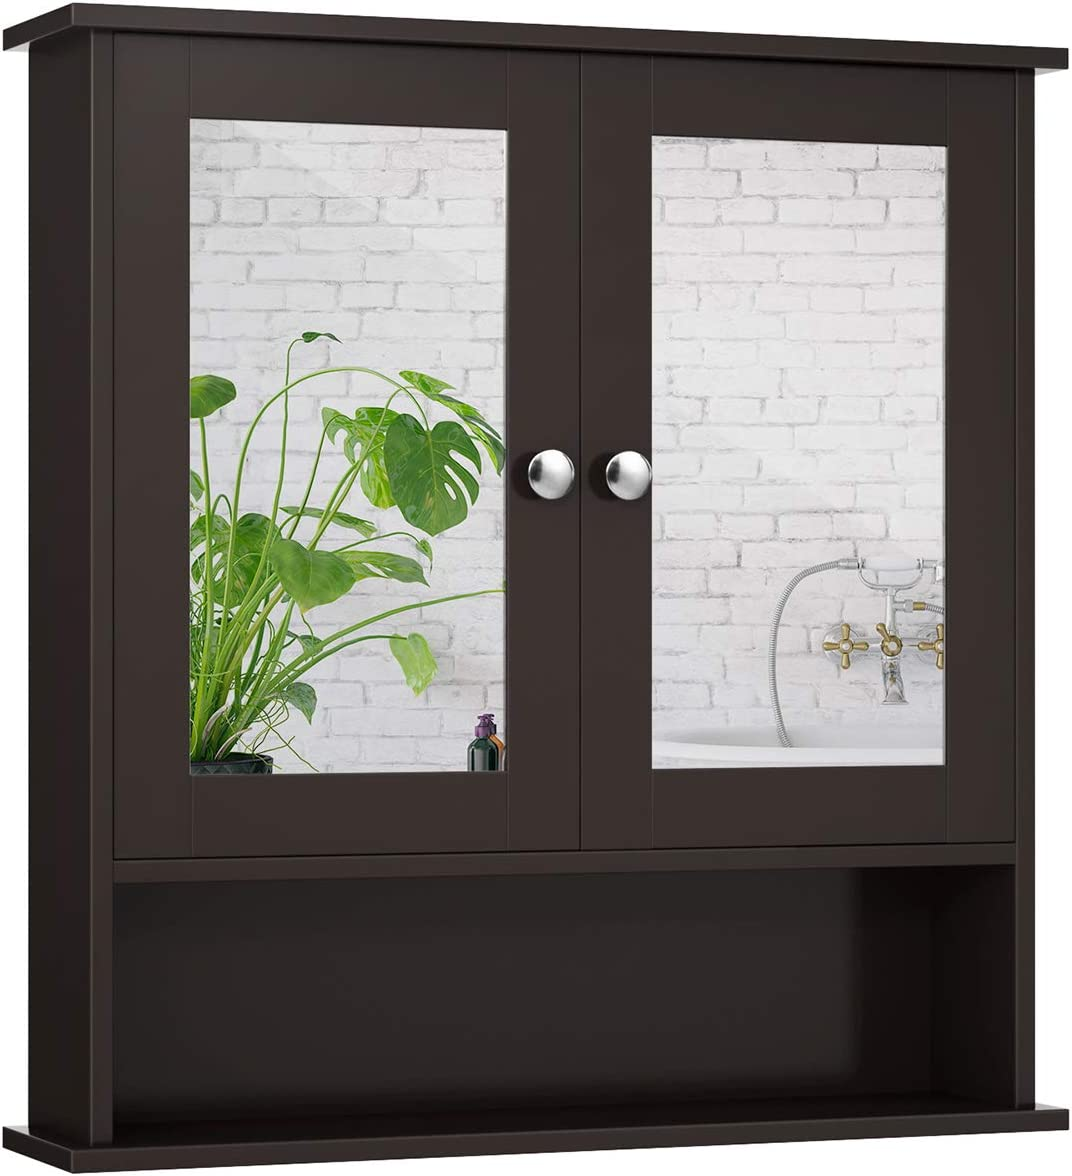 GOFLAME Two-Door Wall Cabinet w Double Storage free O Wooden Mirrors Super sale period limited